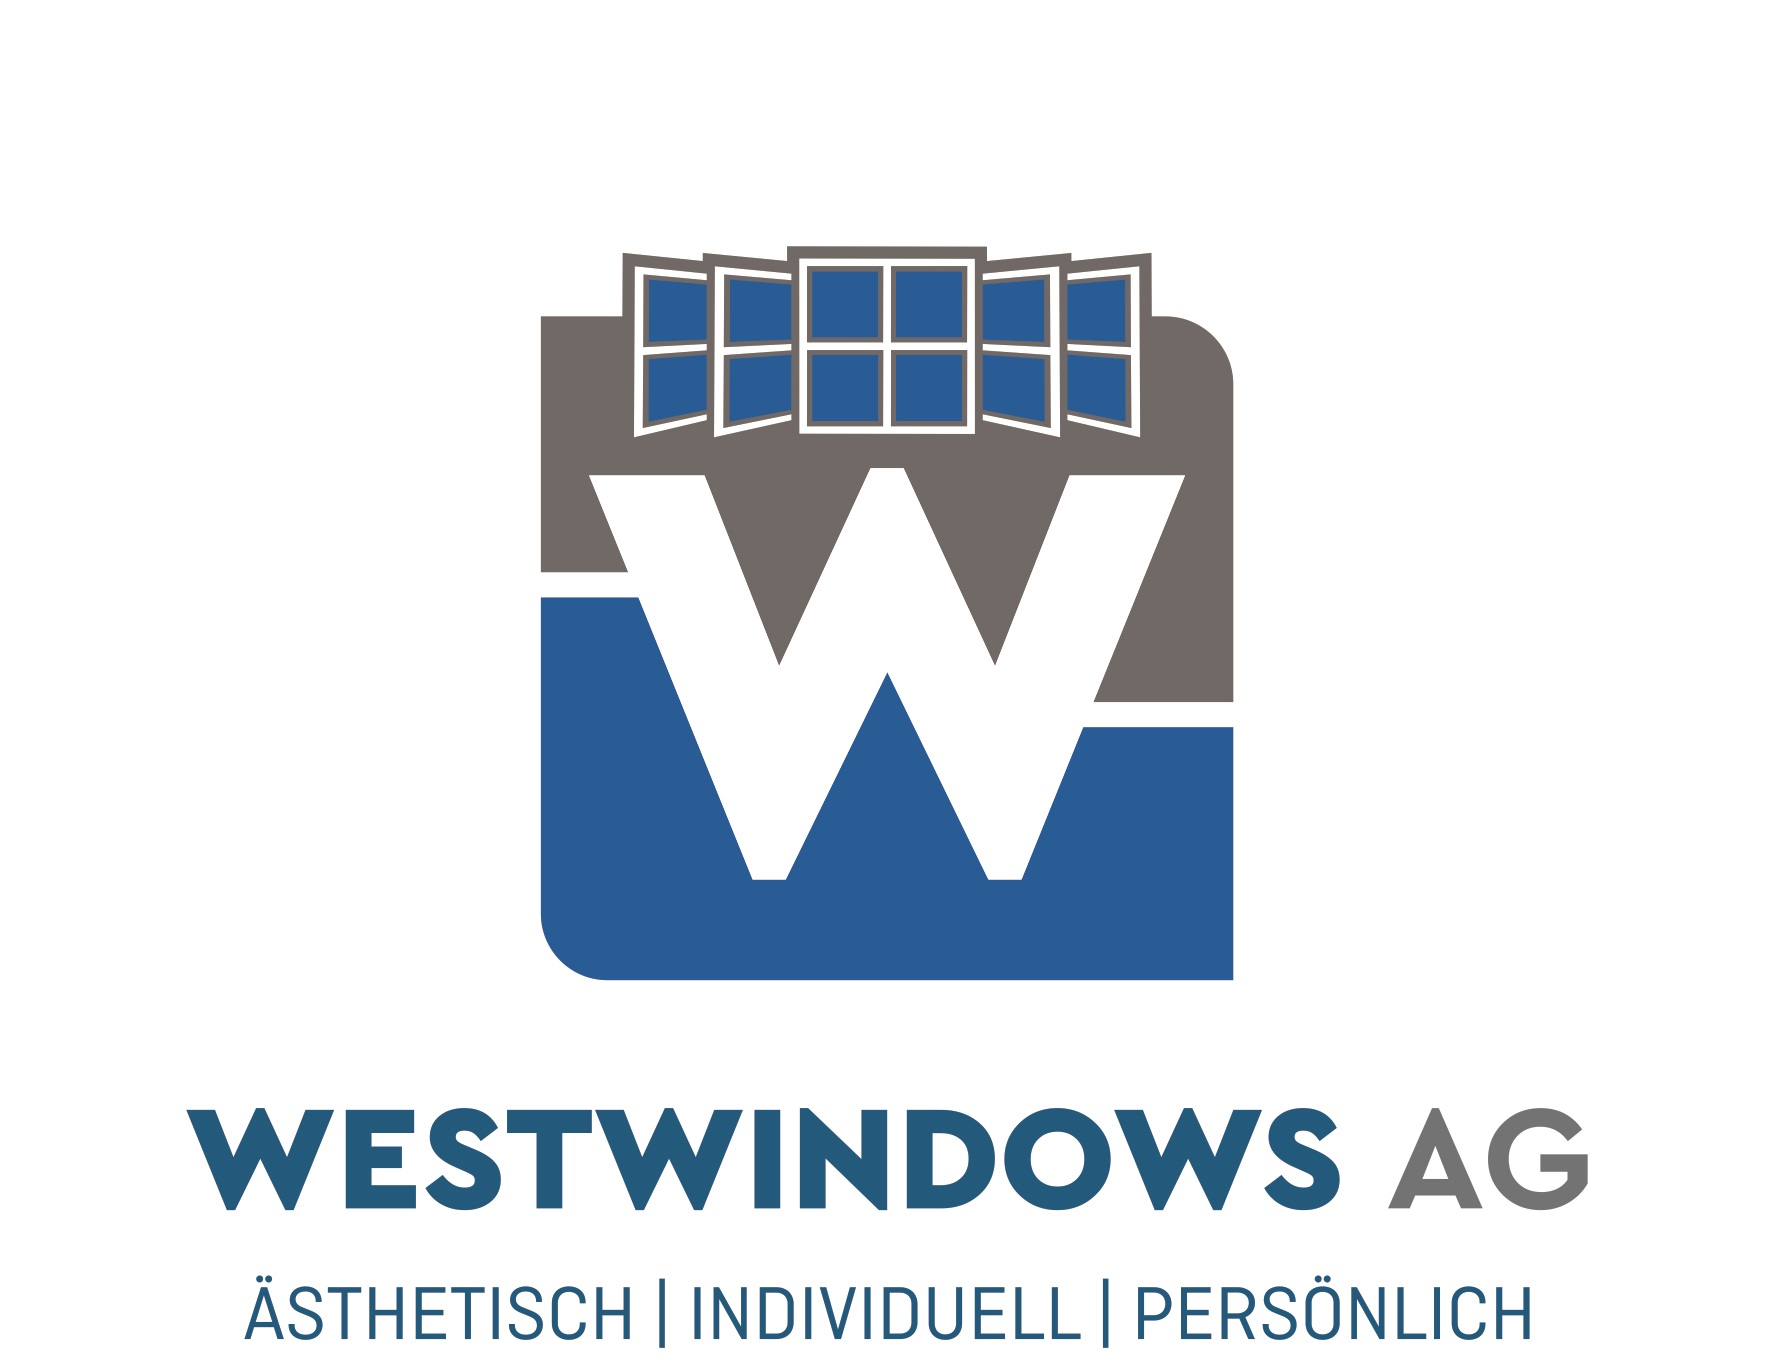 West Windows AG